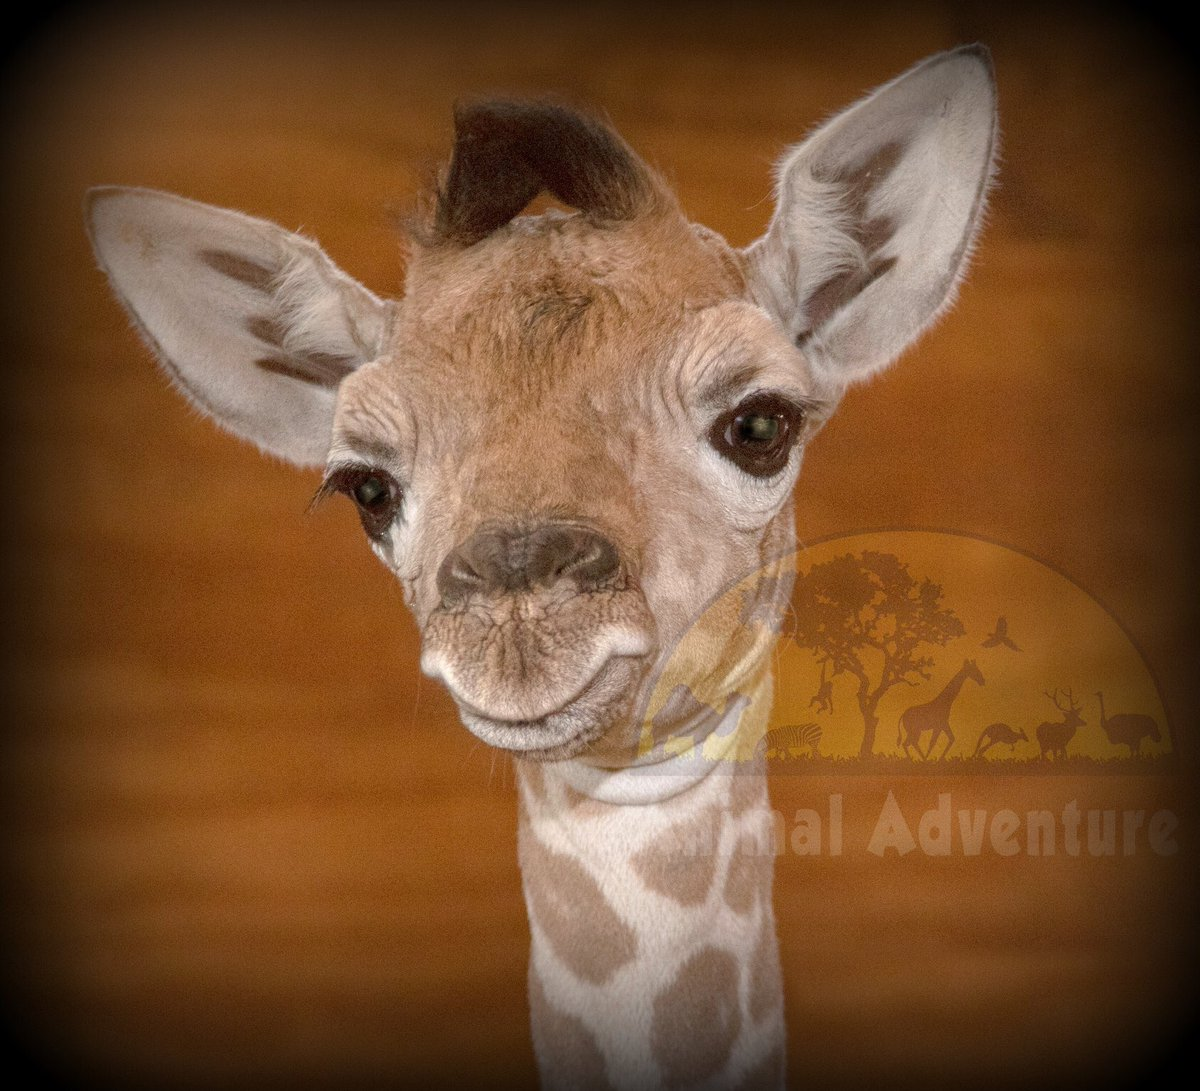 Our calf continues to progress and develop! Make no mistake, every calf born counts! With wild giraffe populations plummeting, now more than ever, successes in responsible propagation programs are continuing to provide strong genetic diversity in captive management programs. <br>http://pic.twitter.com/Z5sUPzVVa7